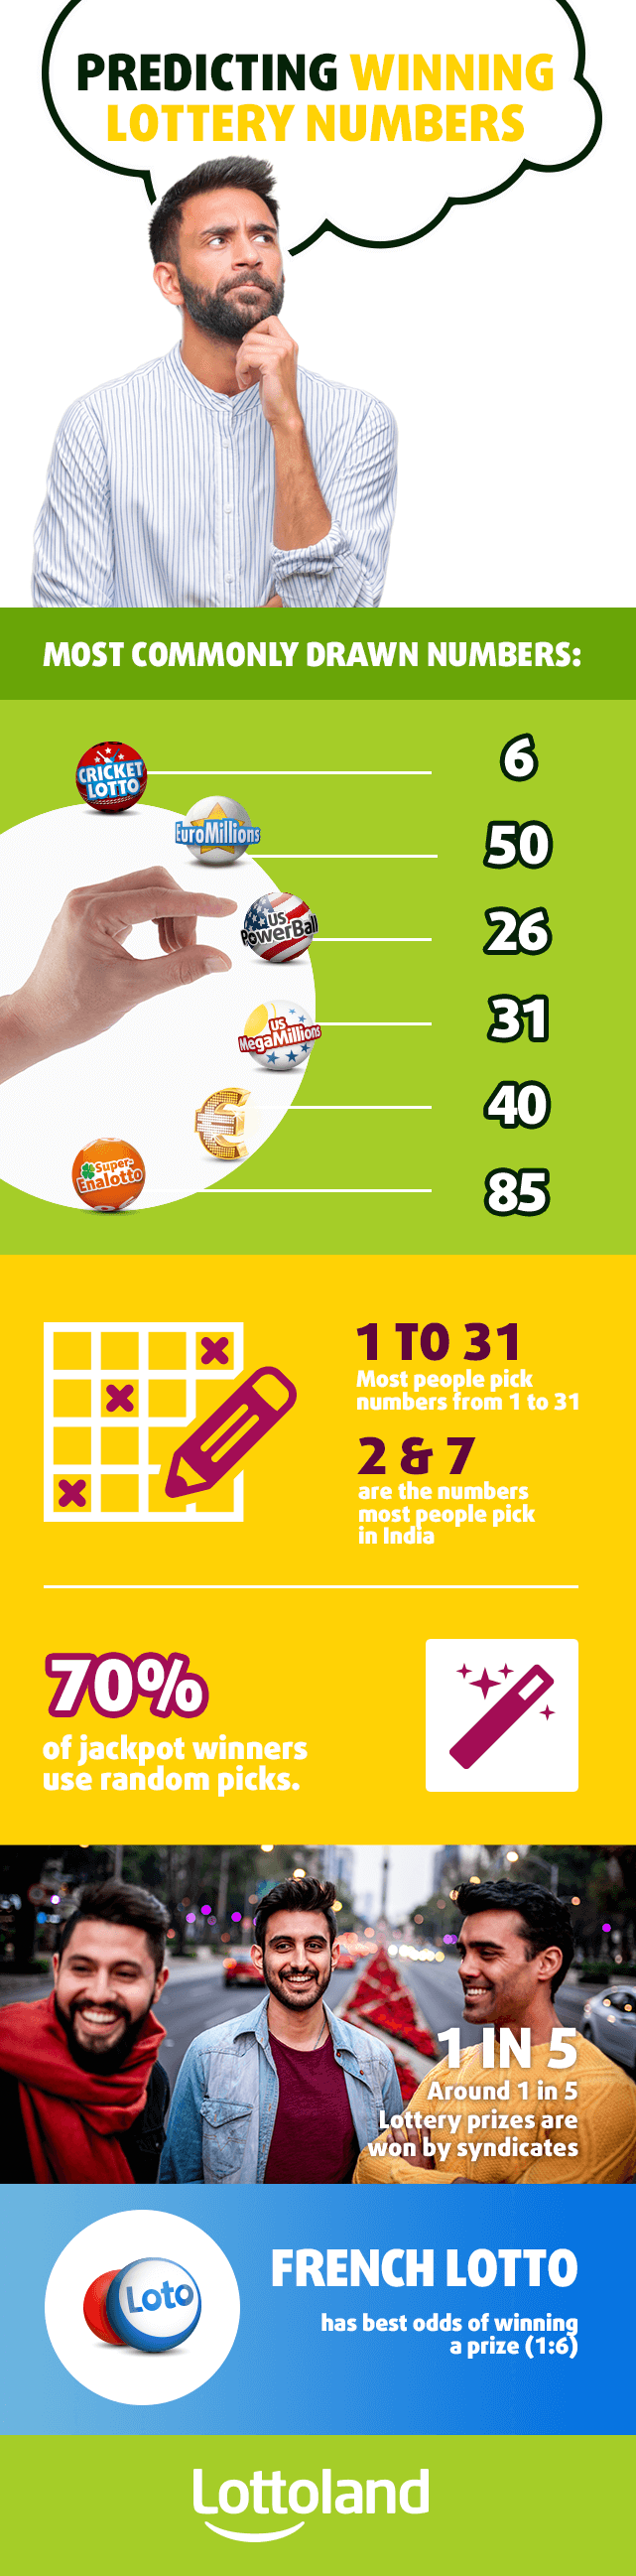 Infographic with most commonly drawn lottery numbers